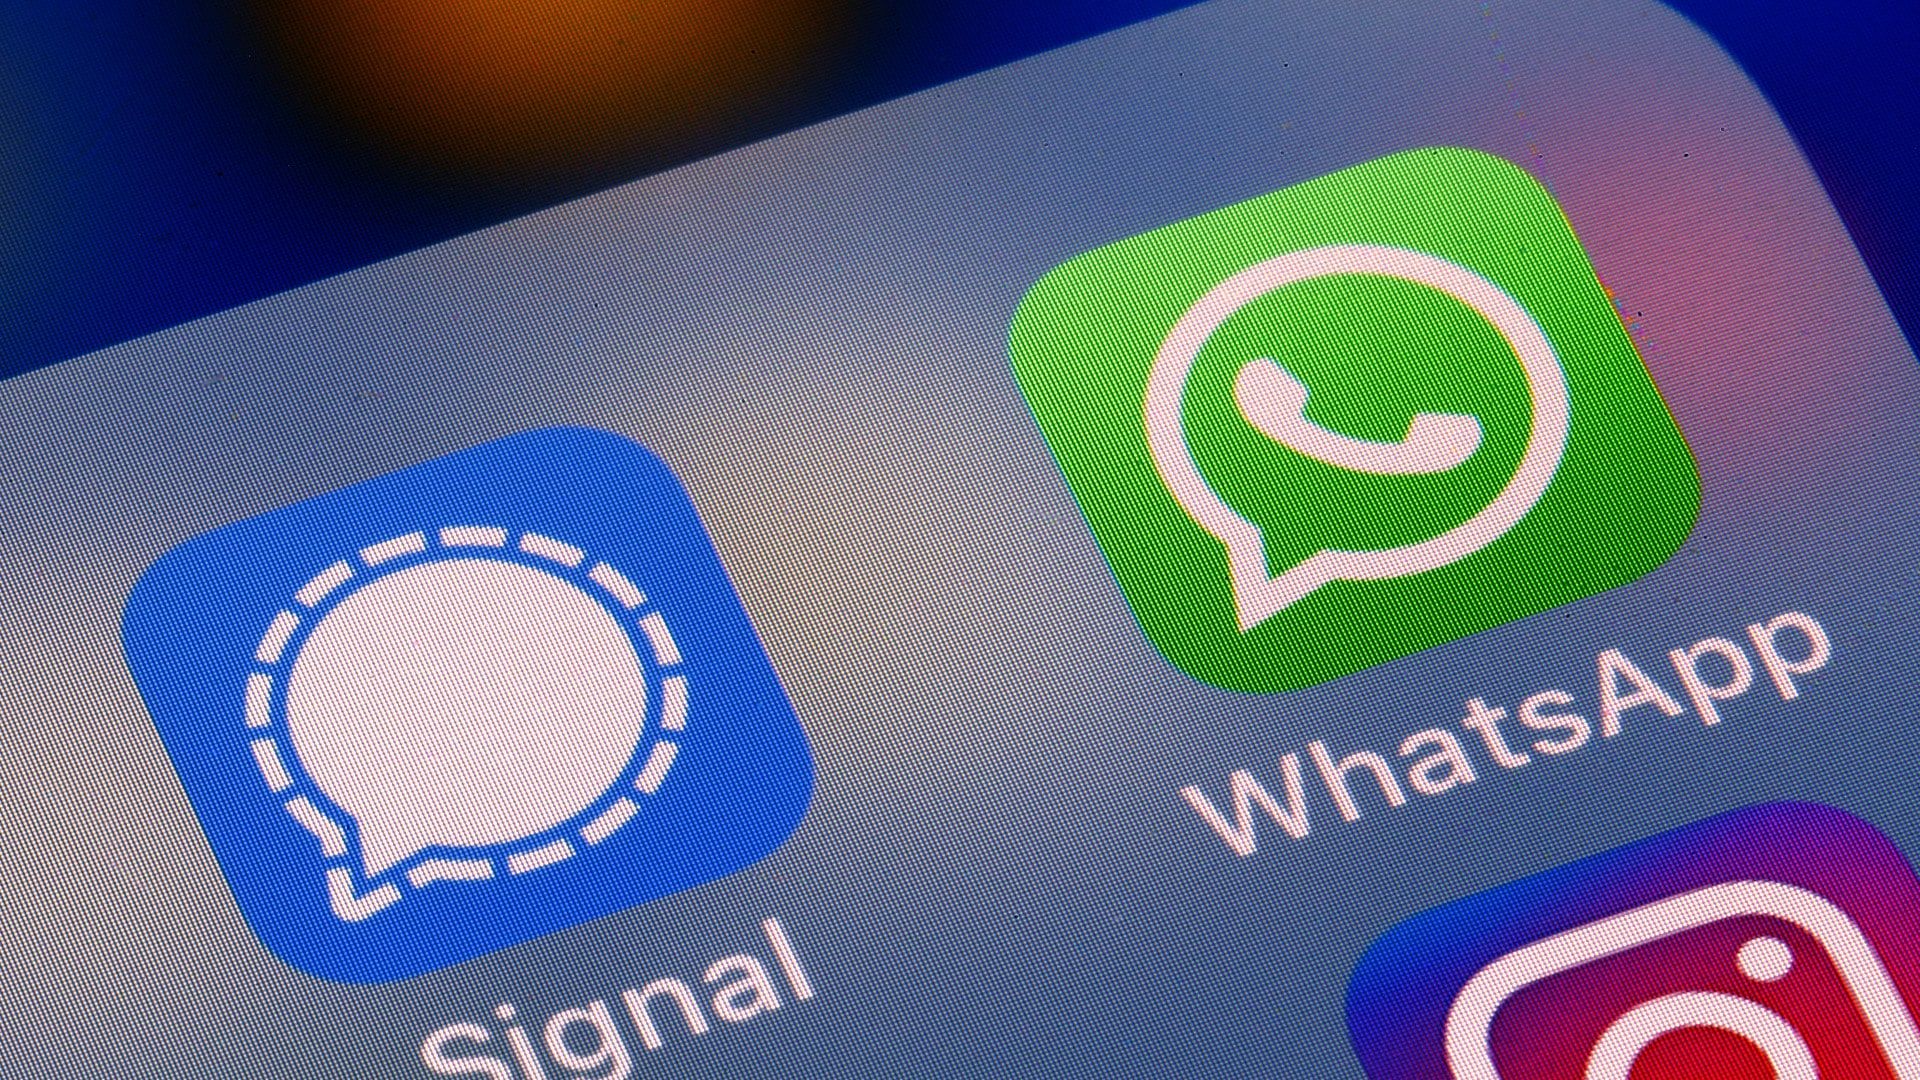 WhatsApp fixes problem in image filter after CPR flagged security vulnerability